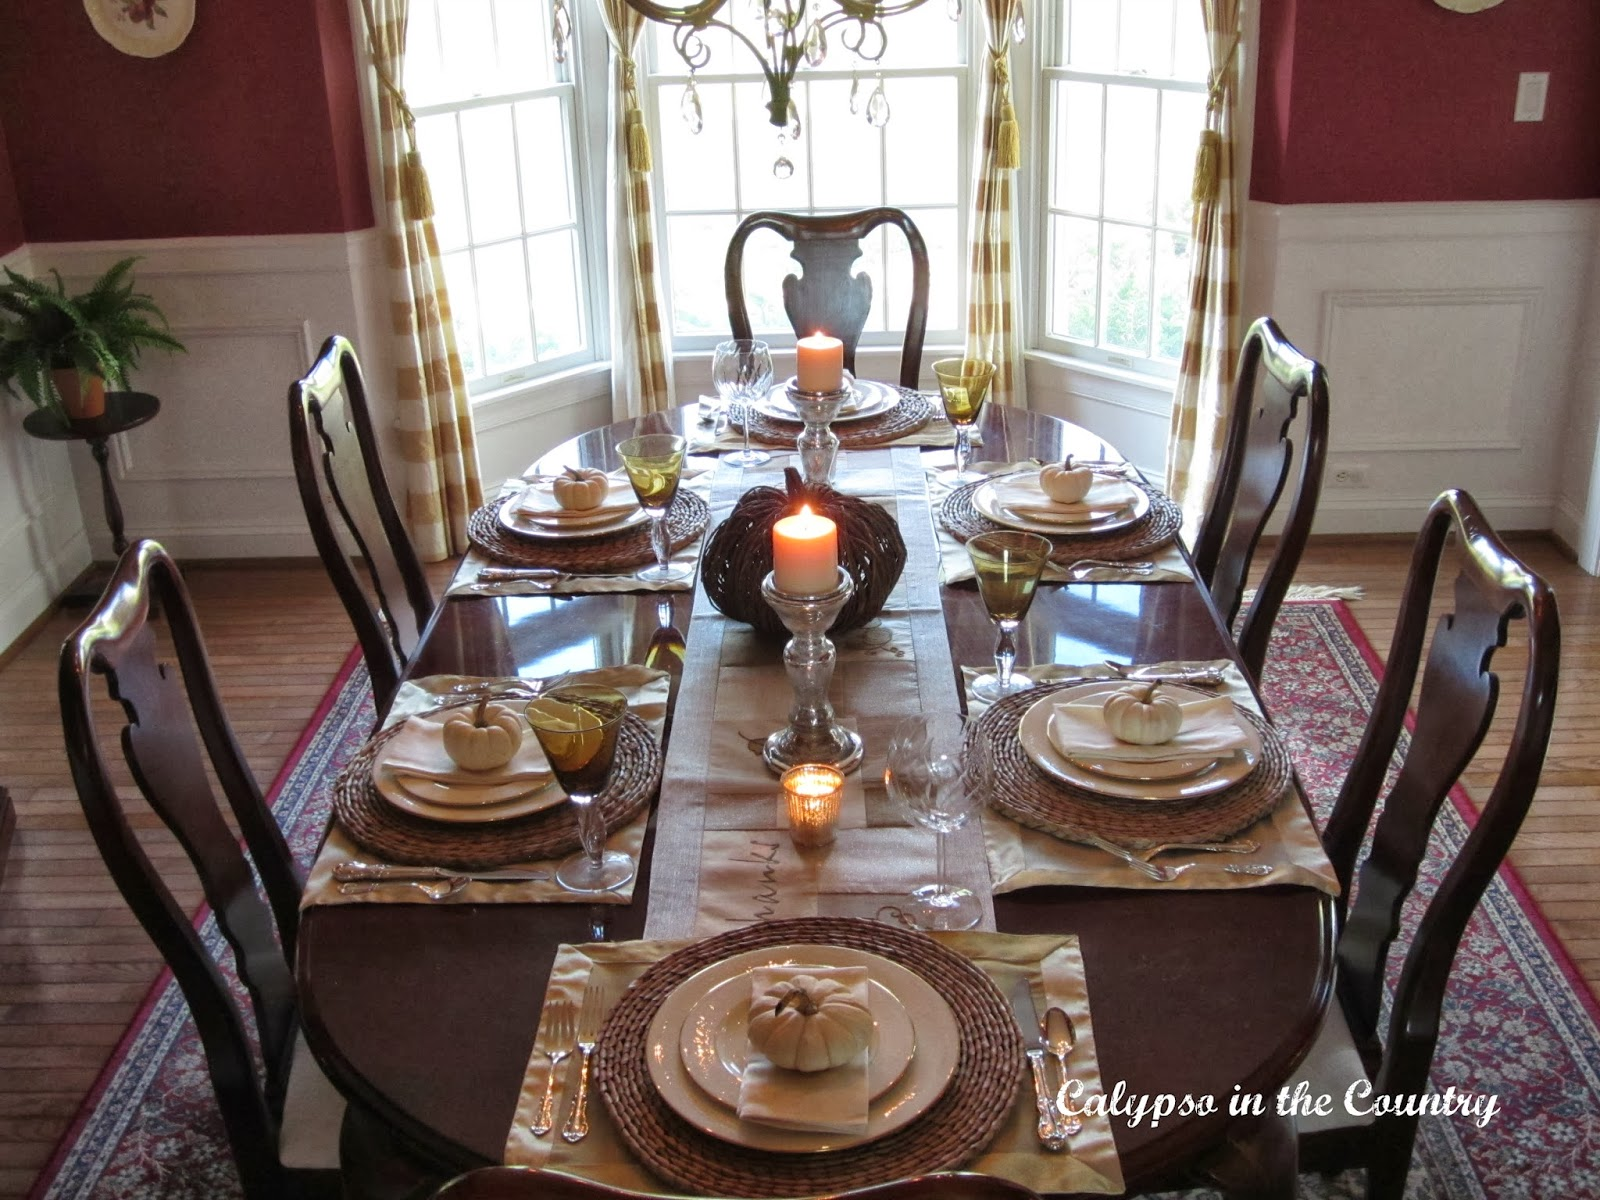 Autumn Table Setting in the Dining Room using White Pumpkins